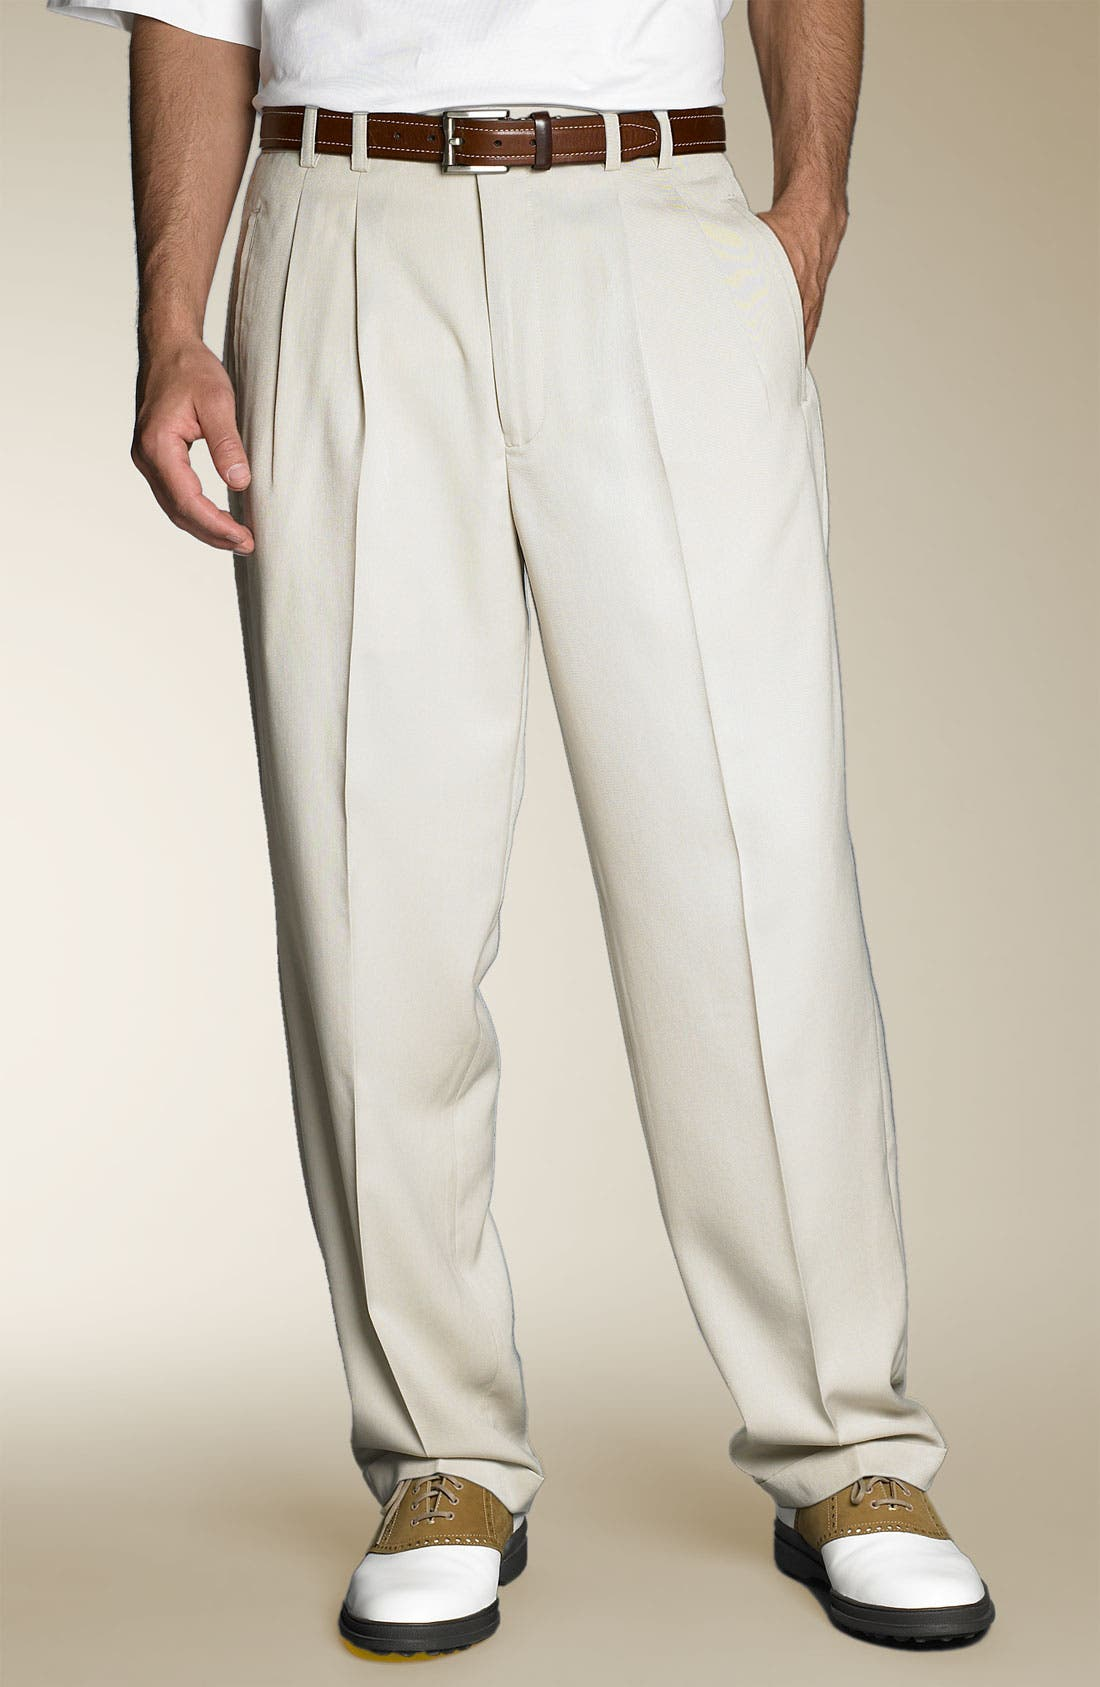 Alternate Image 1 Selected - Cutter & Buck Gabardine Pleated Microfiber Cuffed Trousers (Big & Tall)